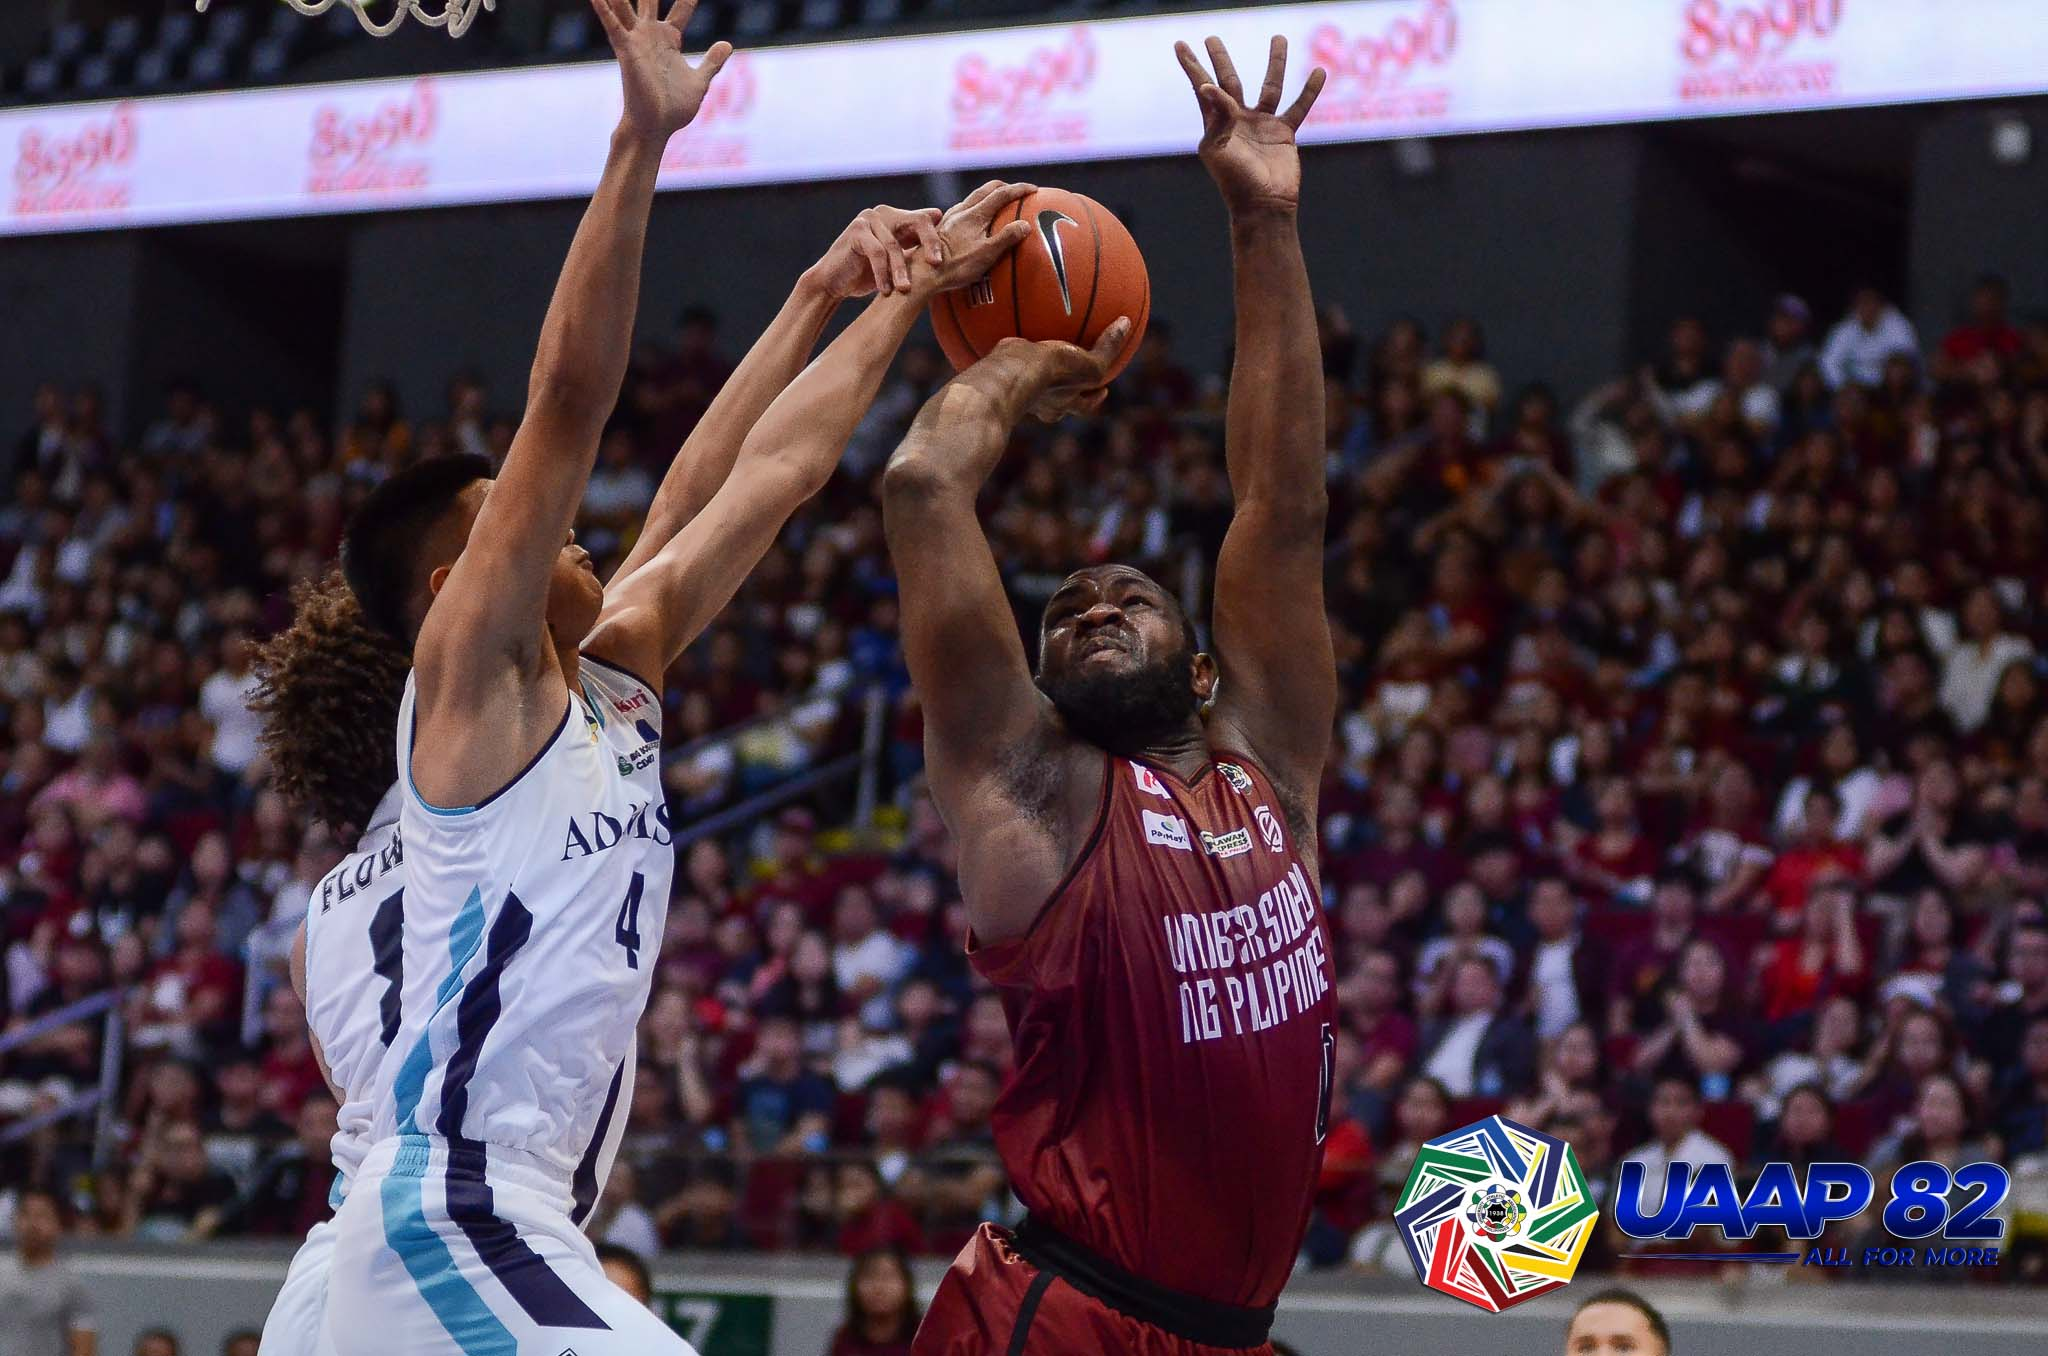 Tiebreaker Times Akhuetie saves the day as UP snatches OT win vs Adamson AdU Basketball News UAAP UP  Valandre Chauca UP Men's Basketball UAAP Season 82 Men's Basketball UAAP Season 82 Lenda Douanga Kobe Paras Juan Gomez De Liano Jerom Lastimosa Franz Pumaren Bright Akhuetie Bo Perasol AP Manlapaz Adamson Men's Basketball